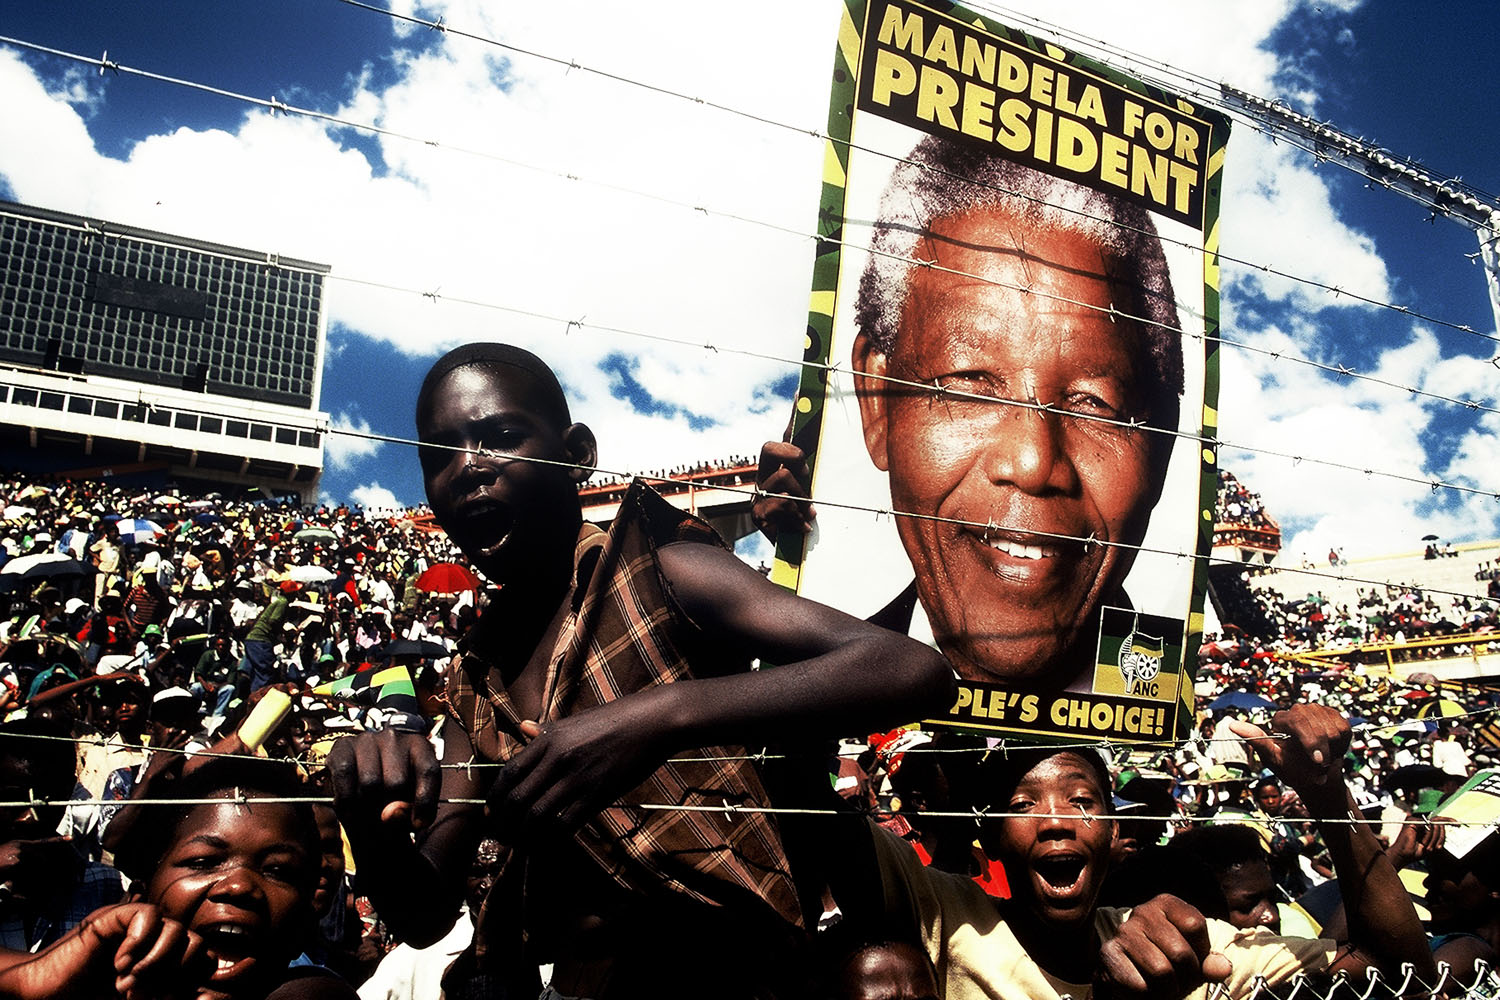 Following Nelson Mandela's release from prison, he circulated through the country. Everywhere he went, millions of South Africans came out to celebrate their leader and to support him in his quest to become the first President of a democratic South Africa. 1993.